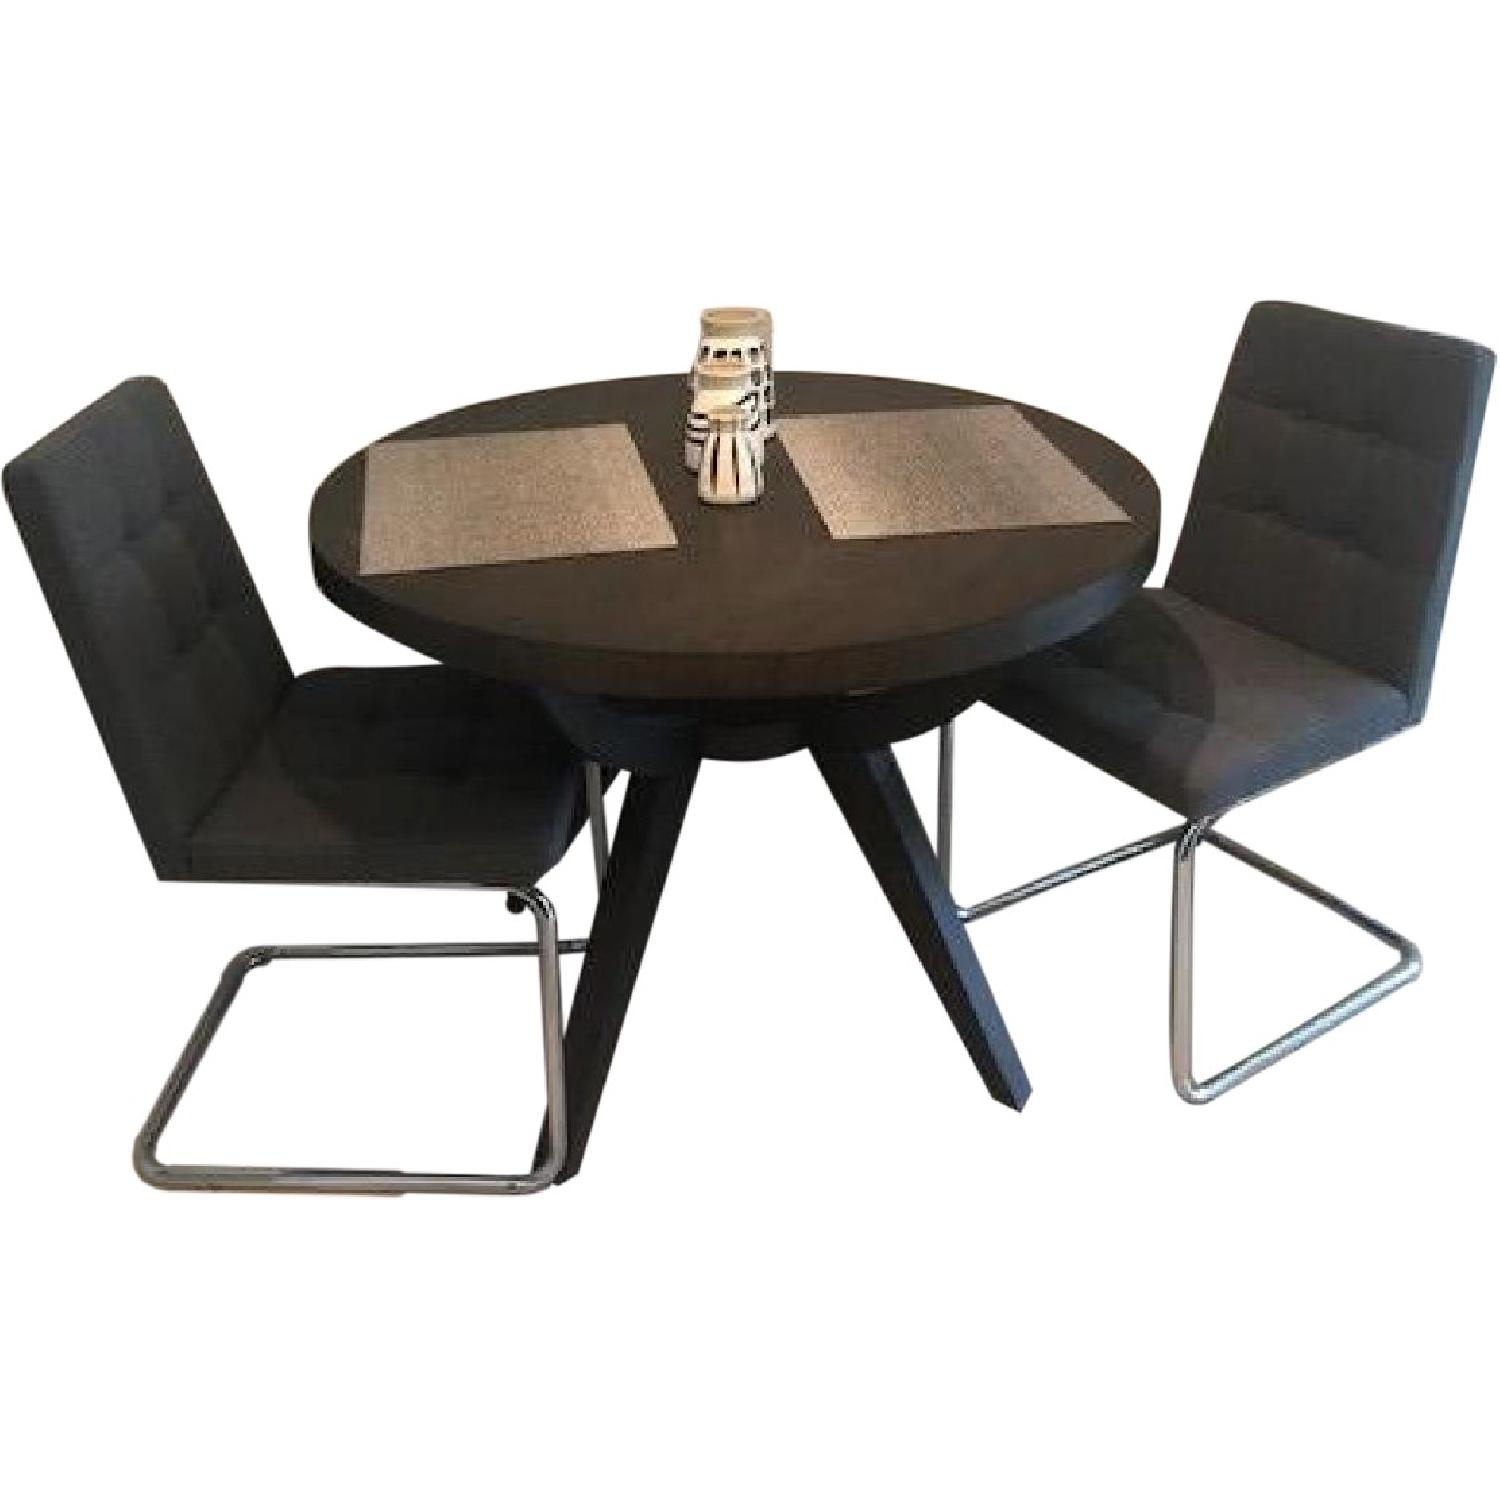 West Elm Arc Base Pedestal Dining Table w/ 2 Chairs